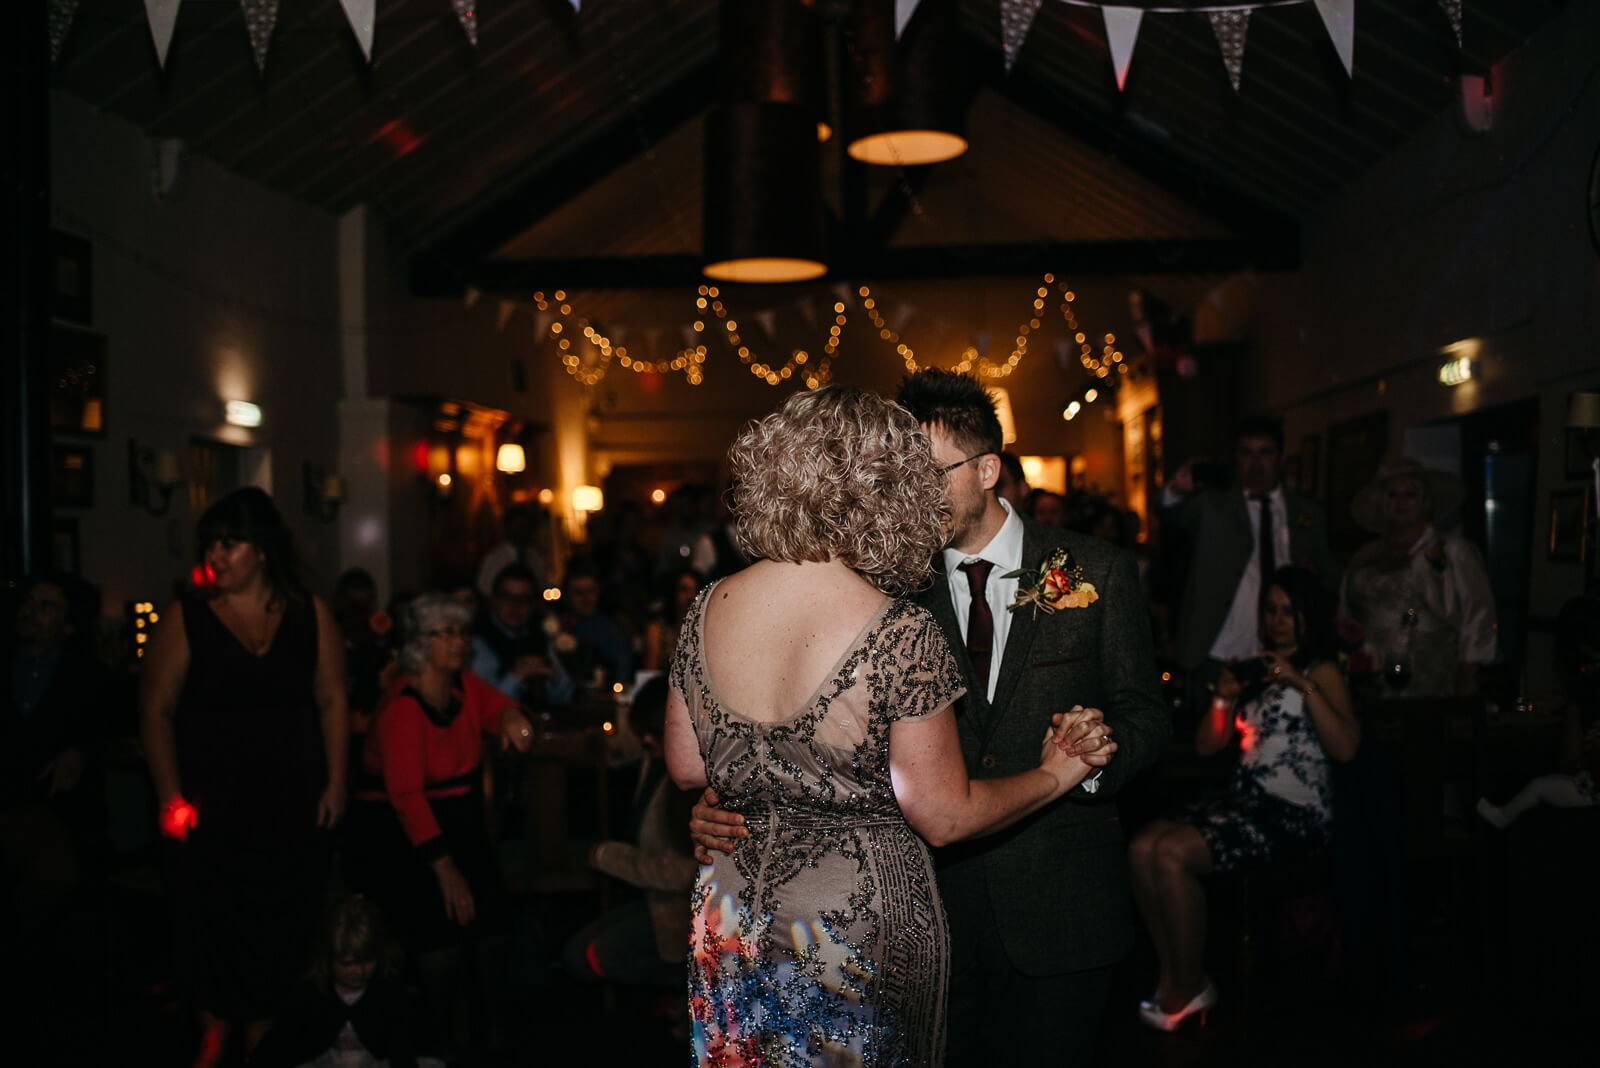 Bride and Groom dancing to Foo Fighters 'overlong' as their first dance in fairy lit barn at Ty Mawr Wedding, Cardiff